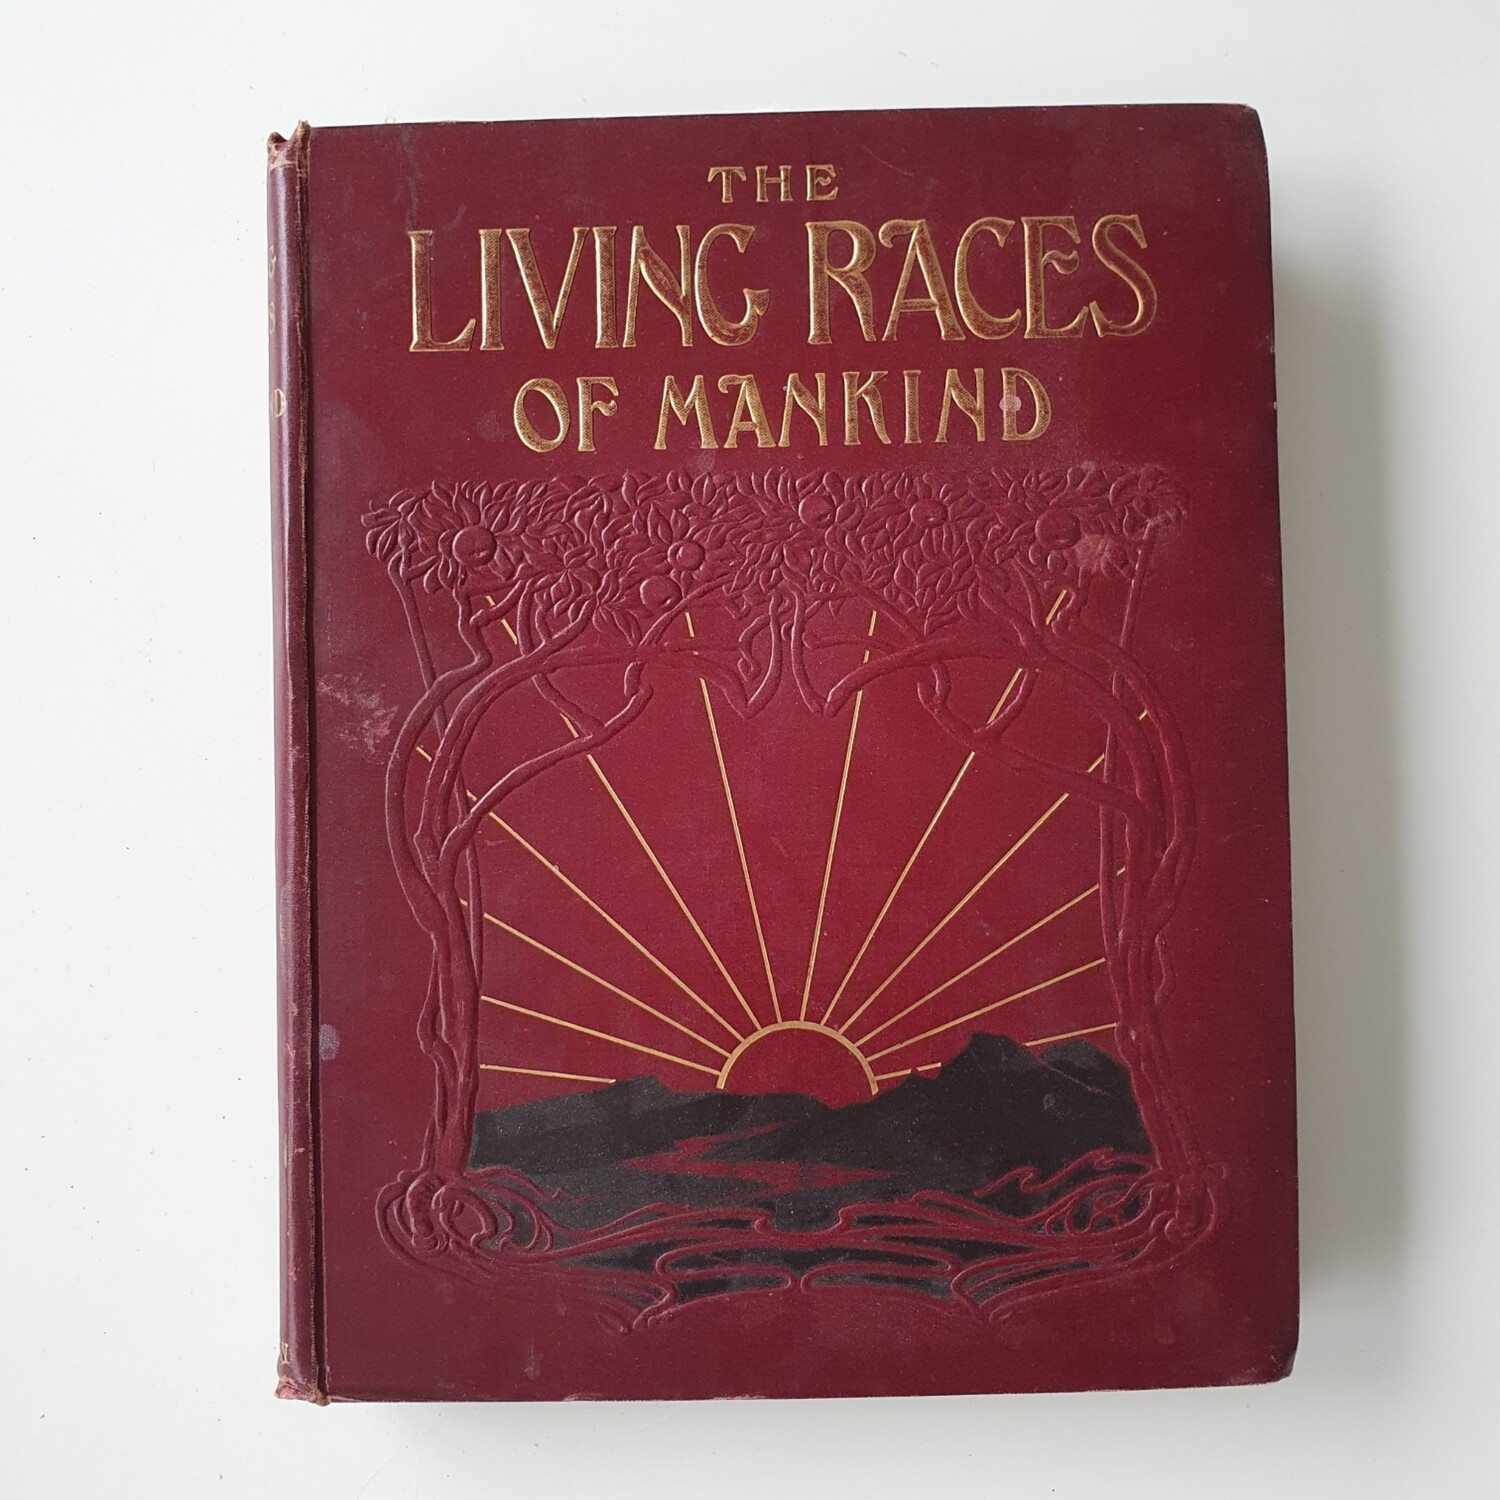 The Living Races of Mankind - vintage book